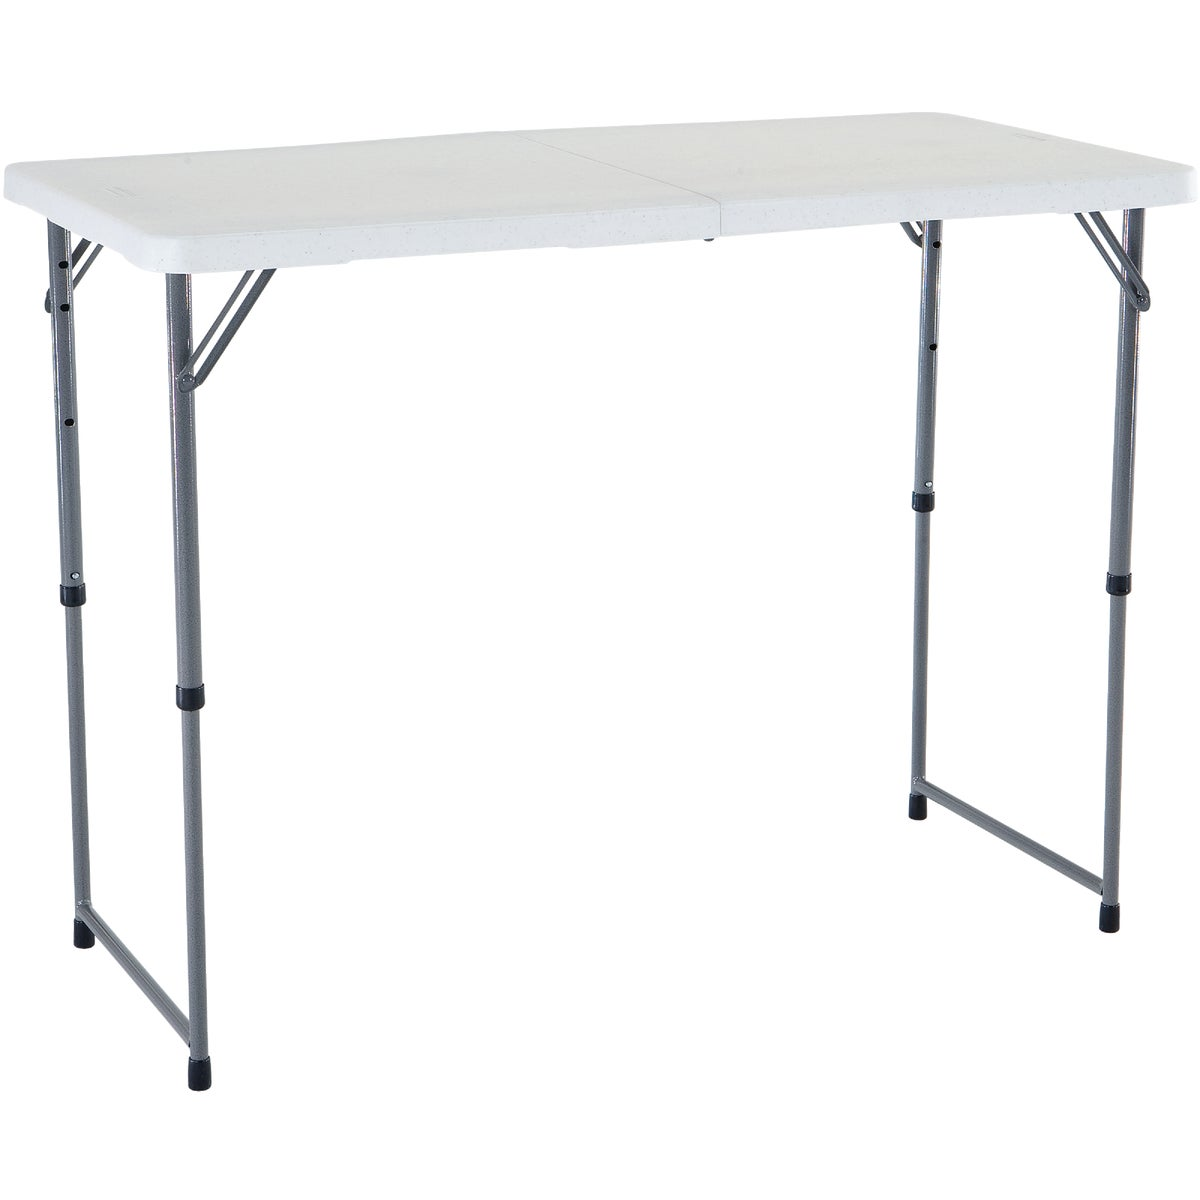 4FT FOLD-IN-HALF TABLE - 4428 by Lifetime  Xiamen